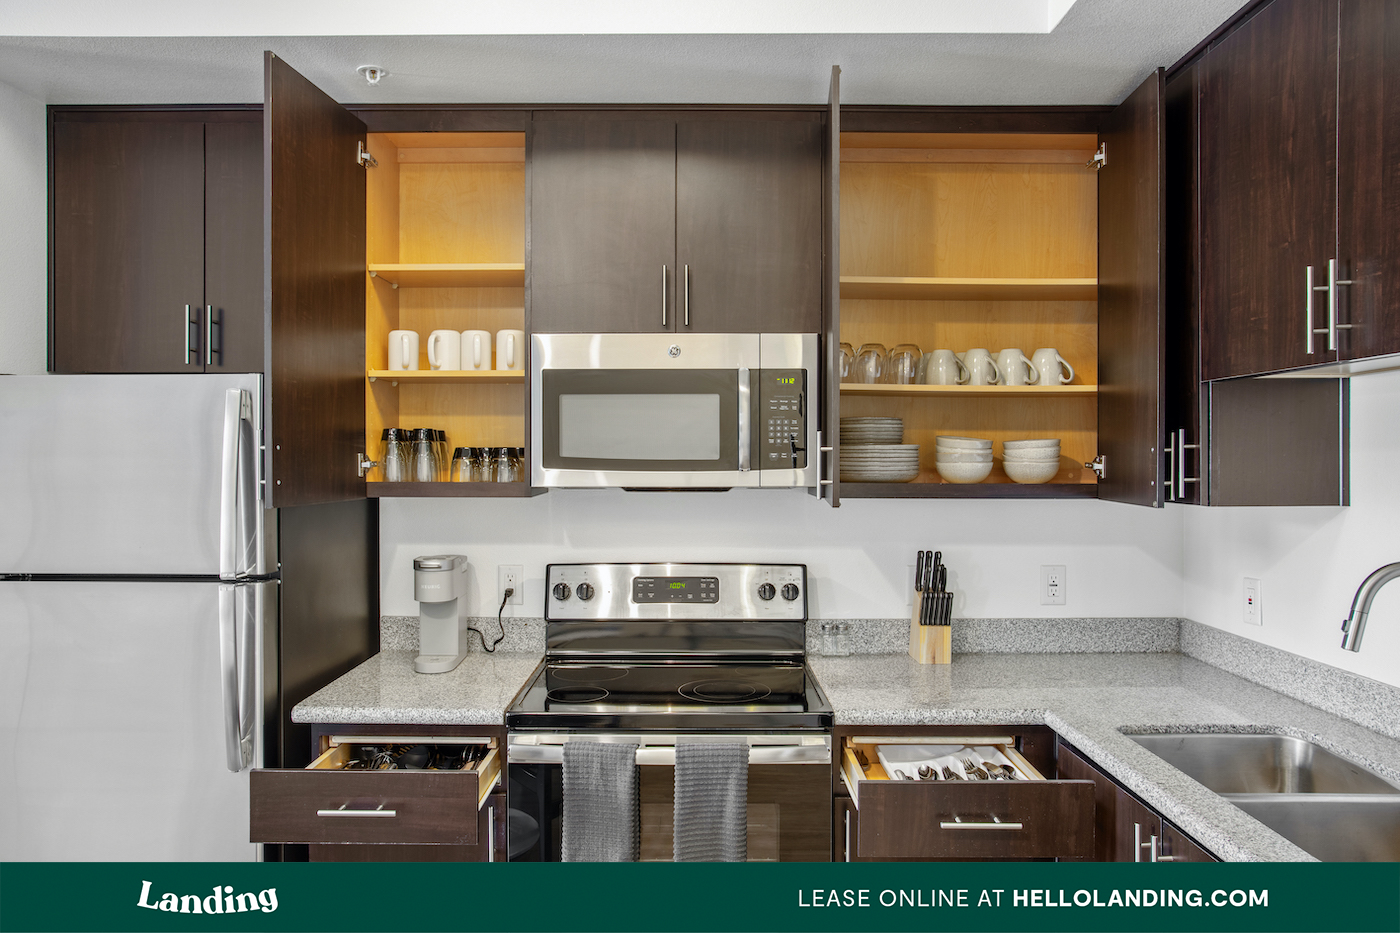 Metwest on Sunset 514 for rent